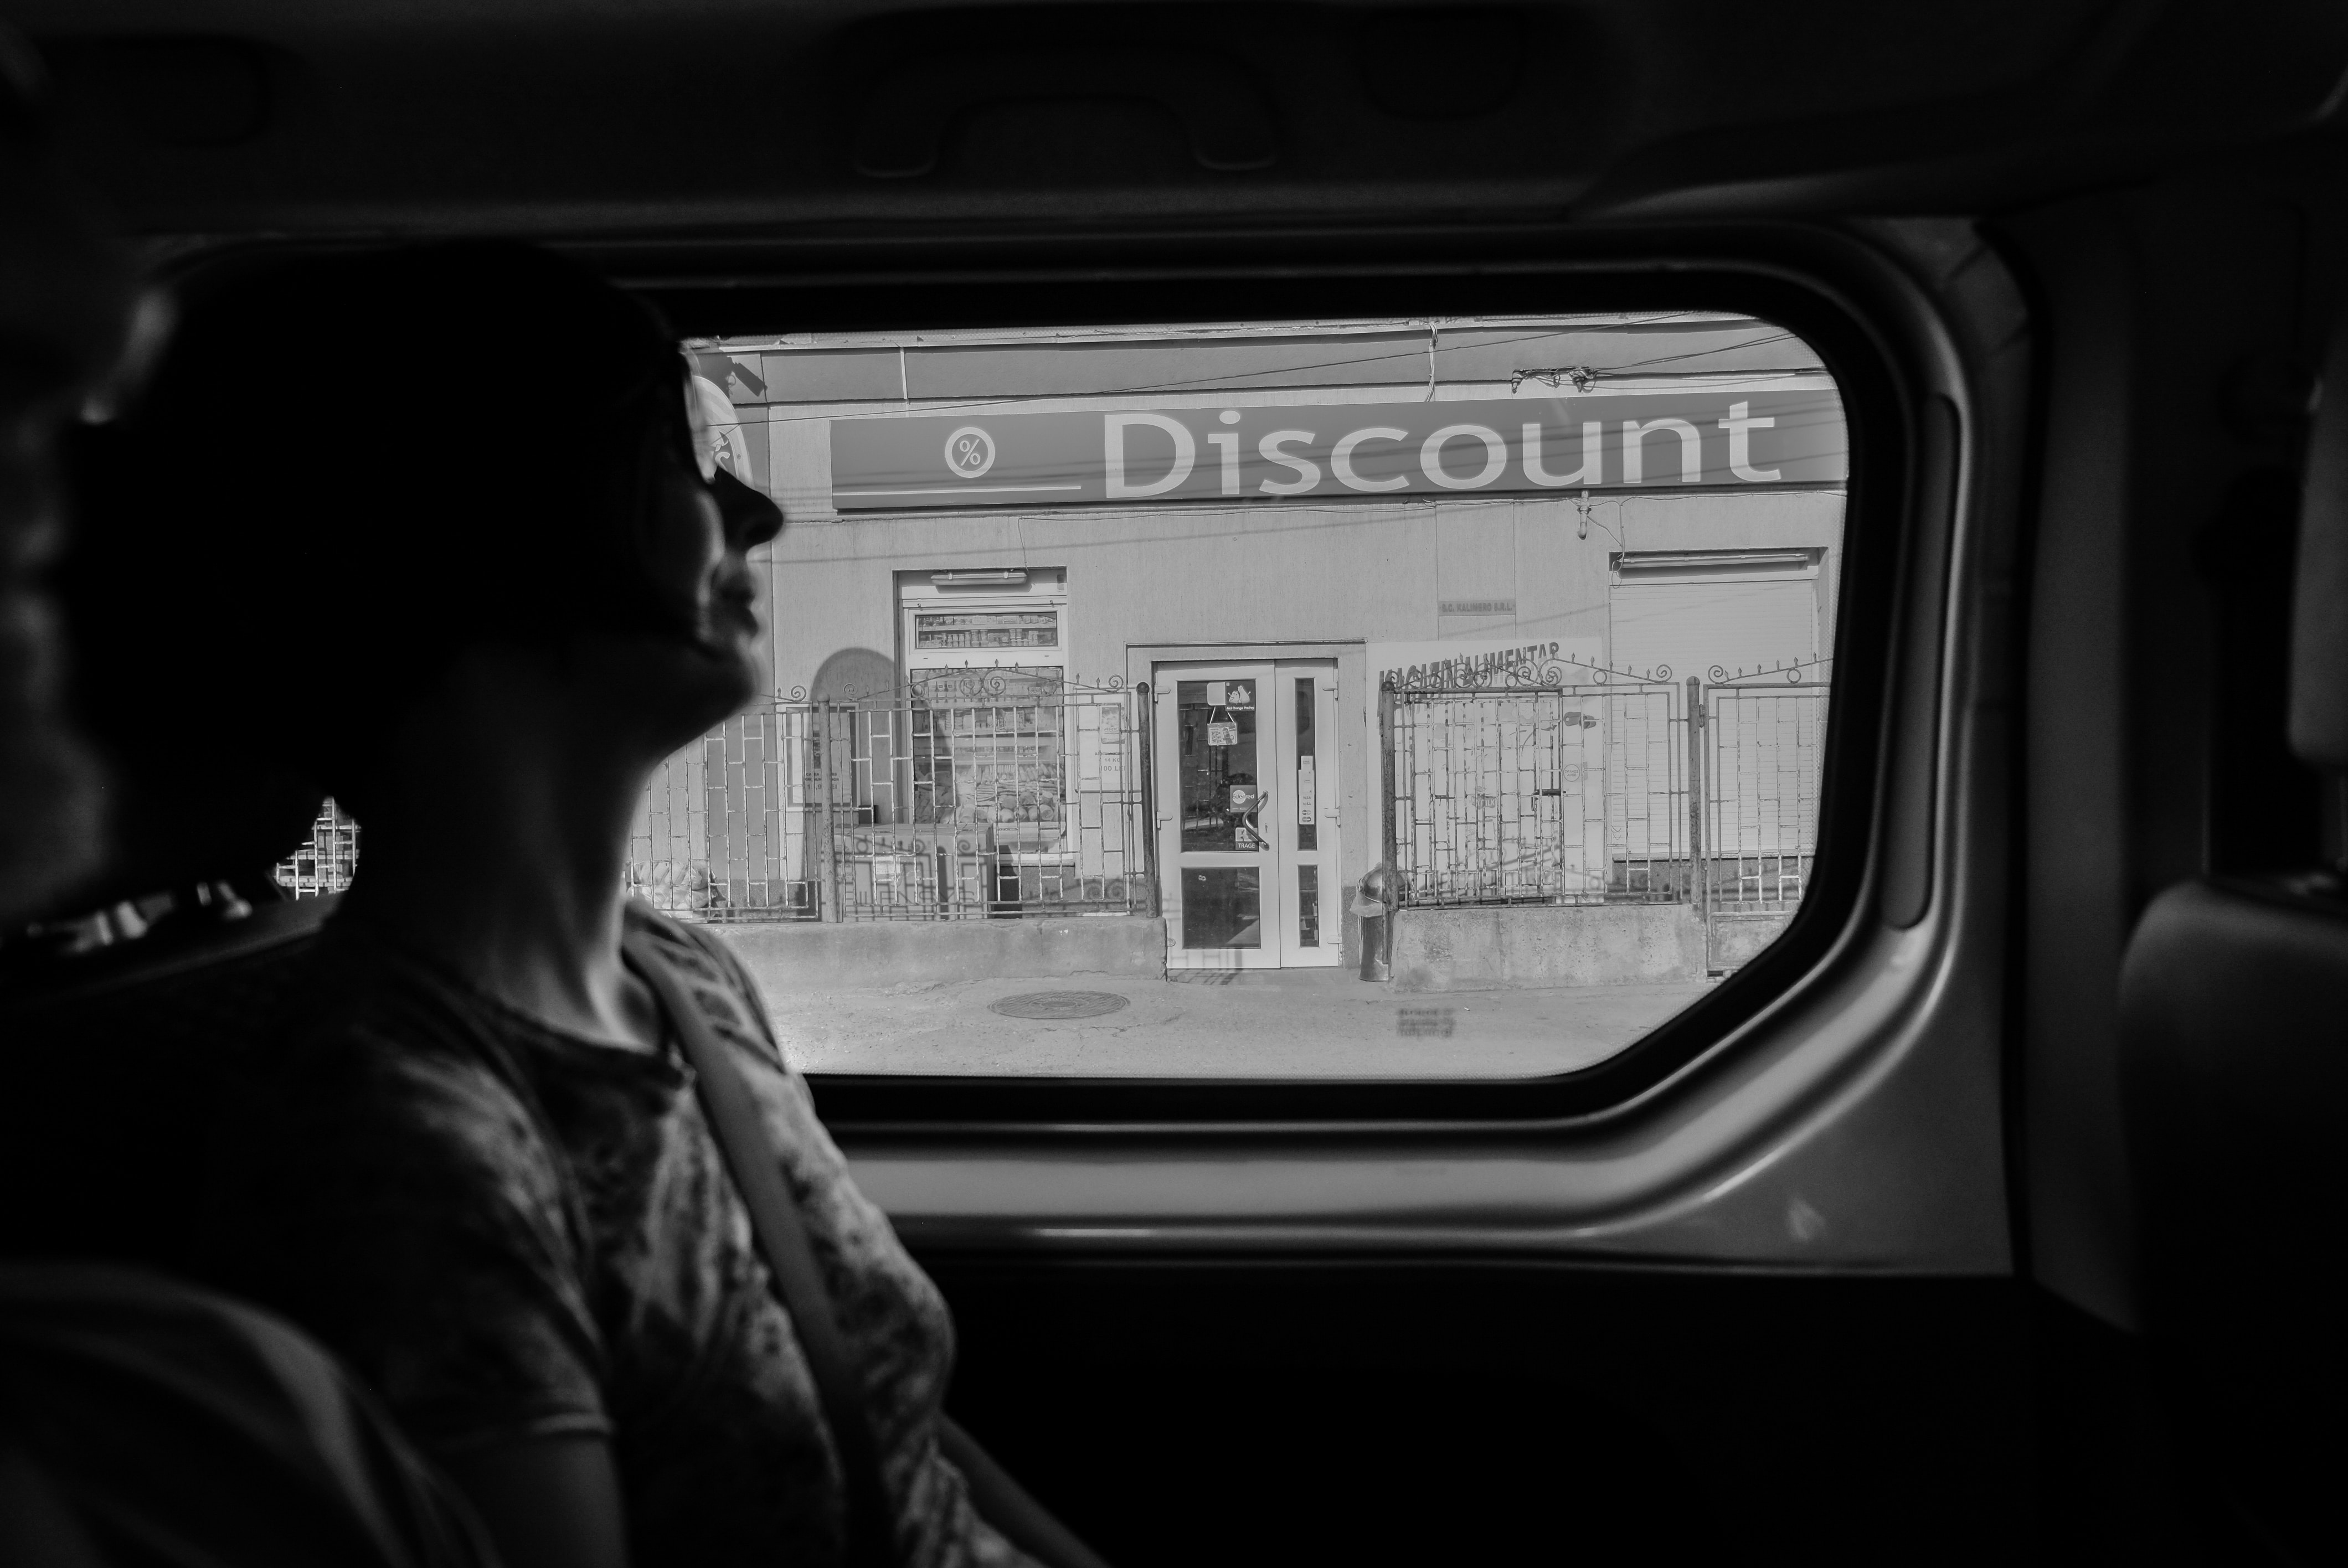 A woman looking outside a car window at a discount sign